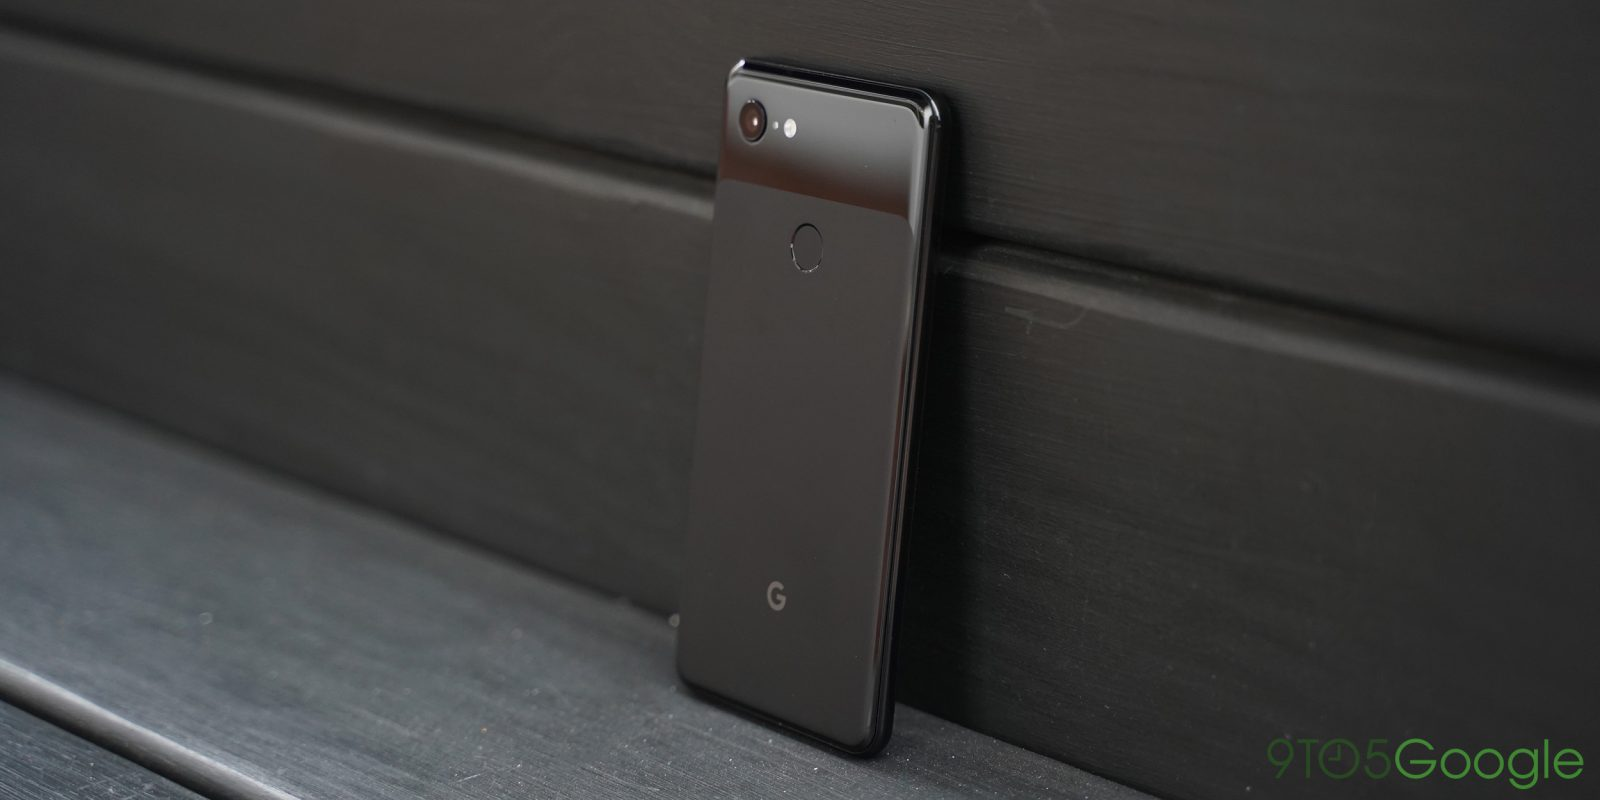 More carriers to support Pixel 3 eSIM, Google helping build